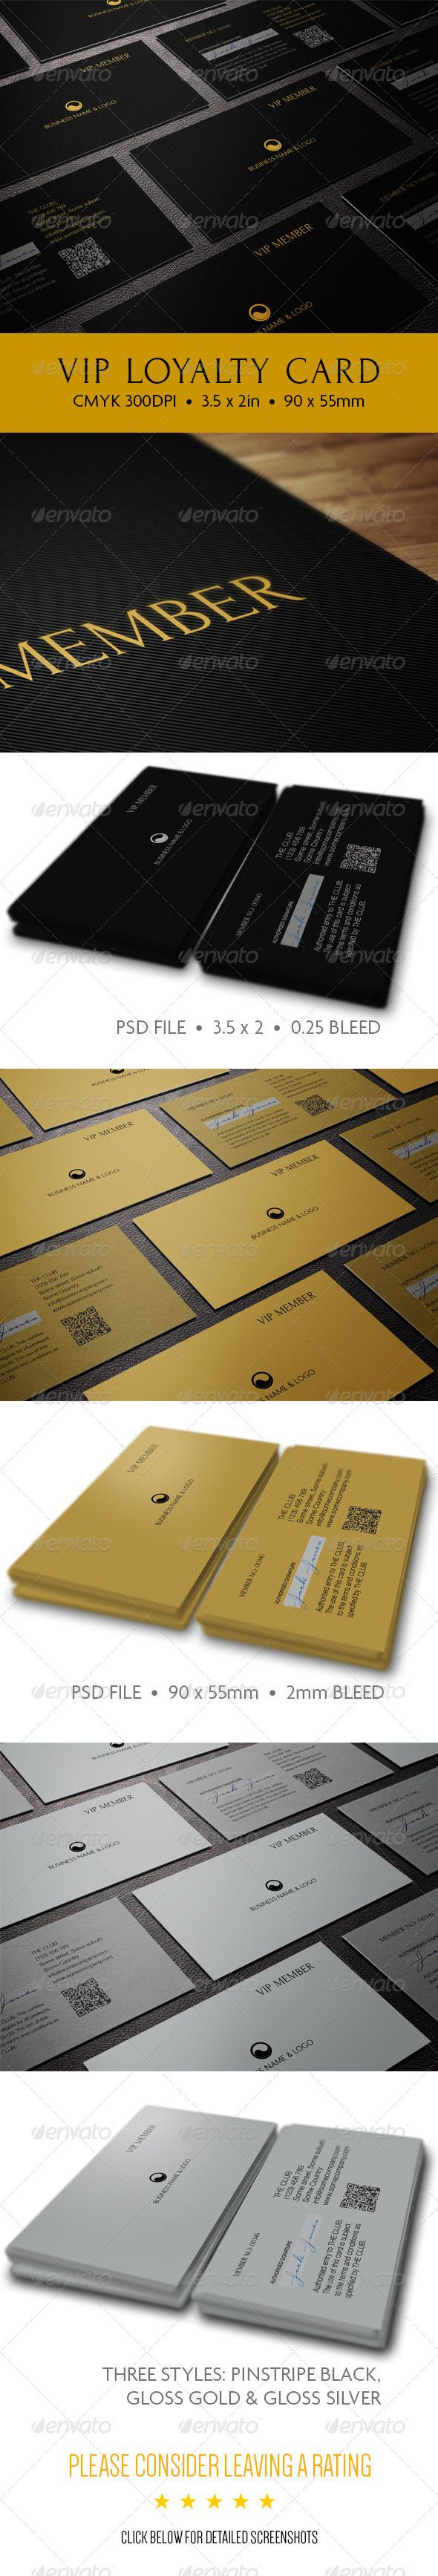 Membership Cards Templates The Vip Card #graphicriver Share The Love And Reward Your Customers .